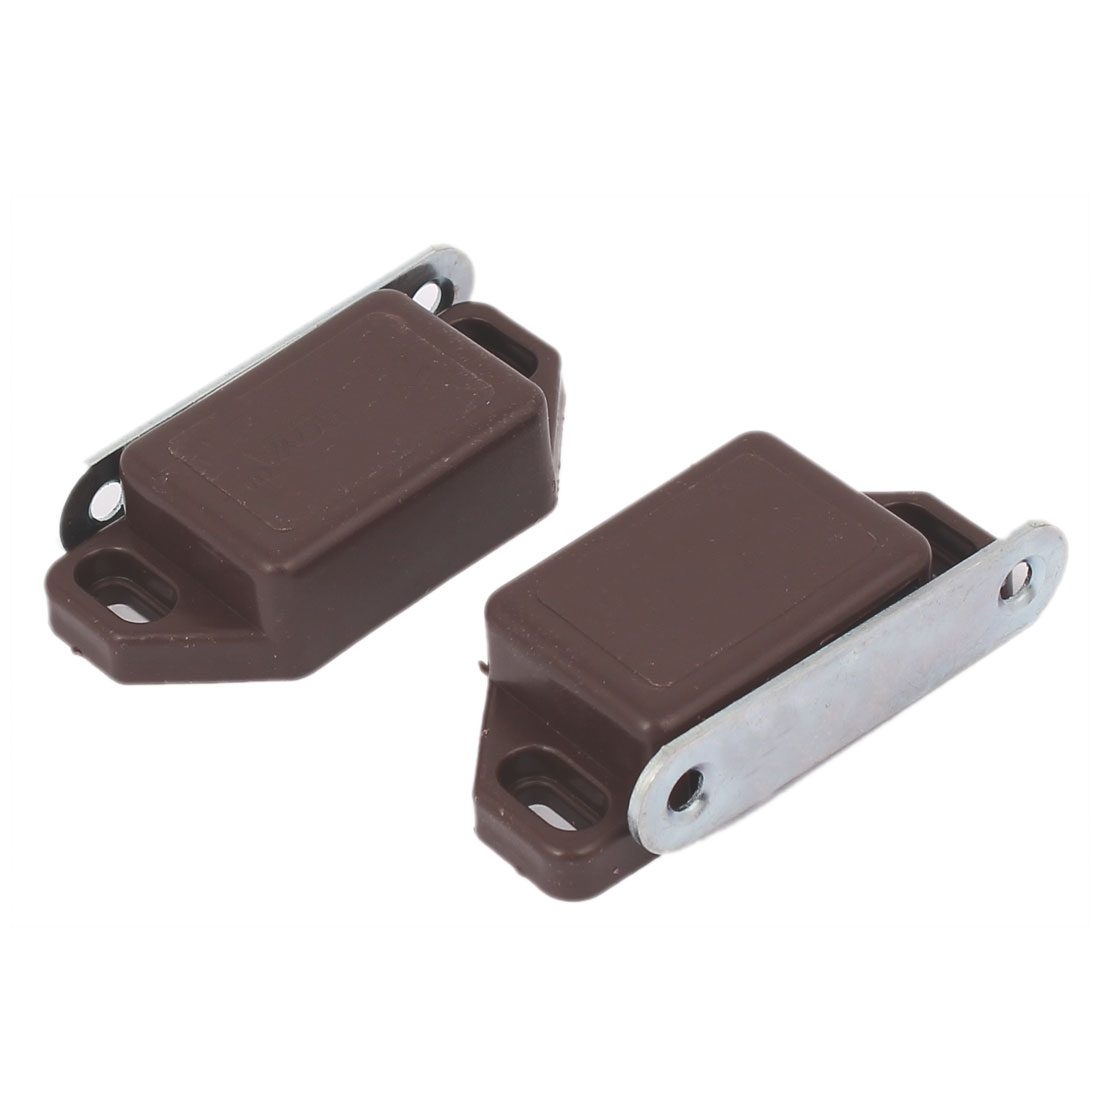 Cabinet Cupboard Plastic Shell Magnetic Catch Touch Latch Brown 57mmx27mm 2pcs